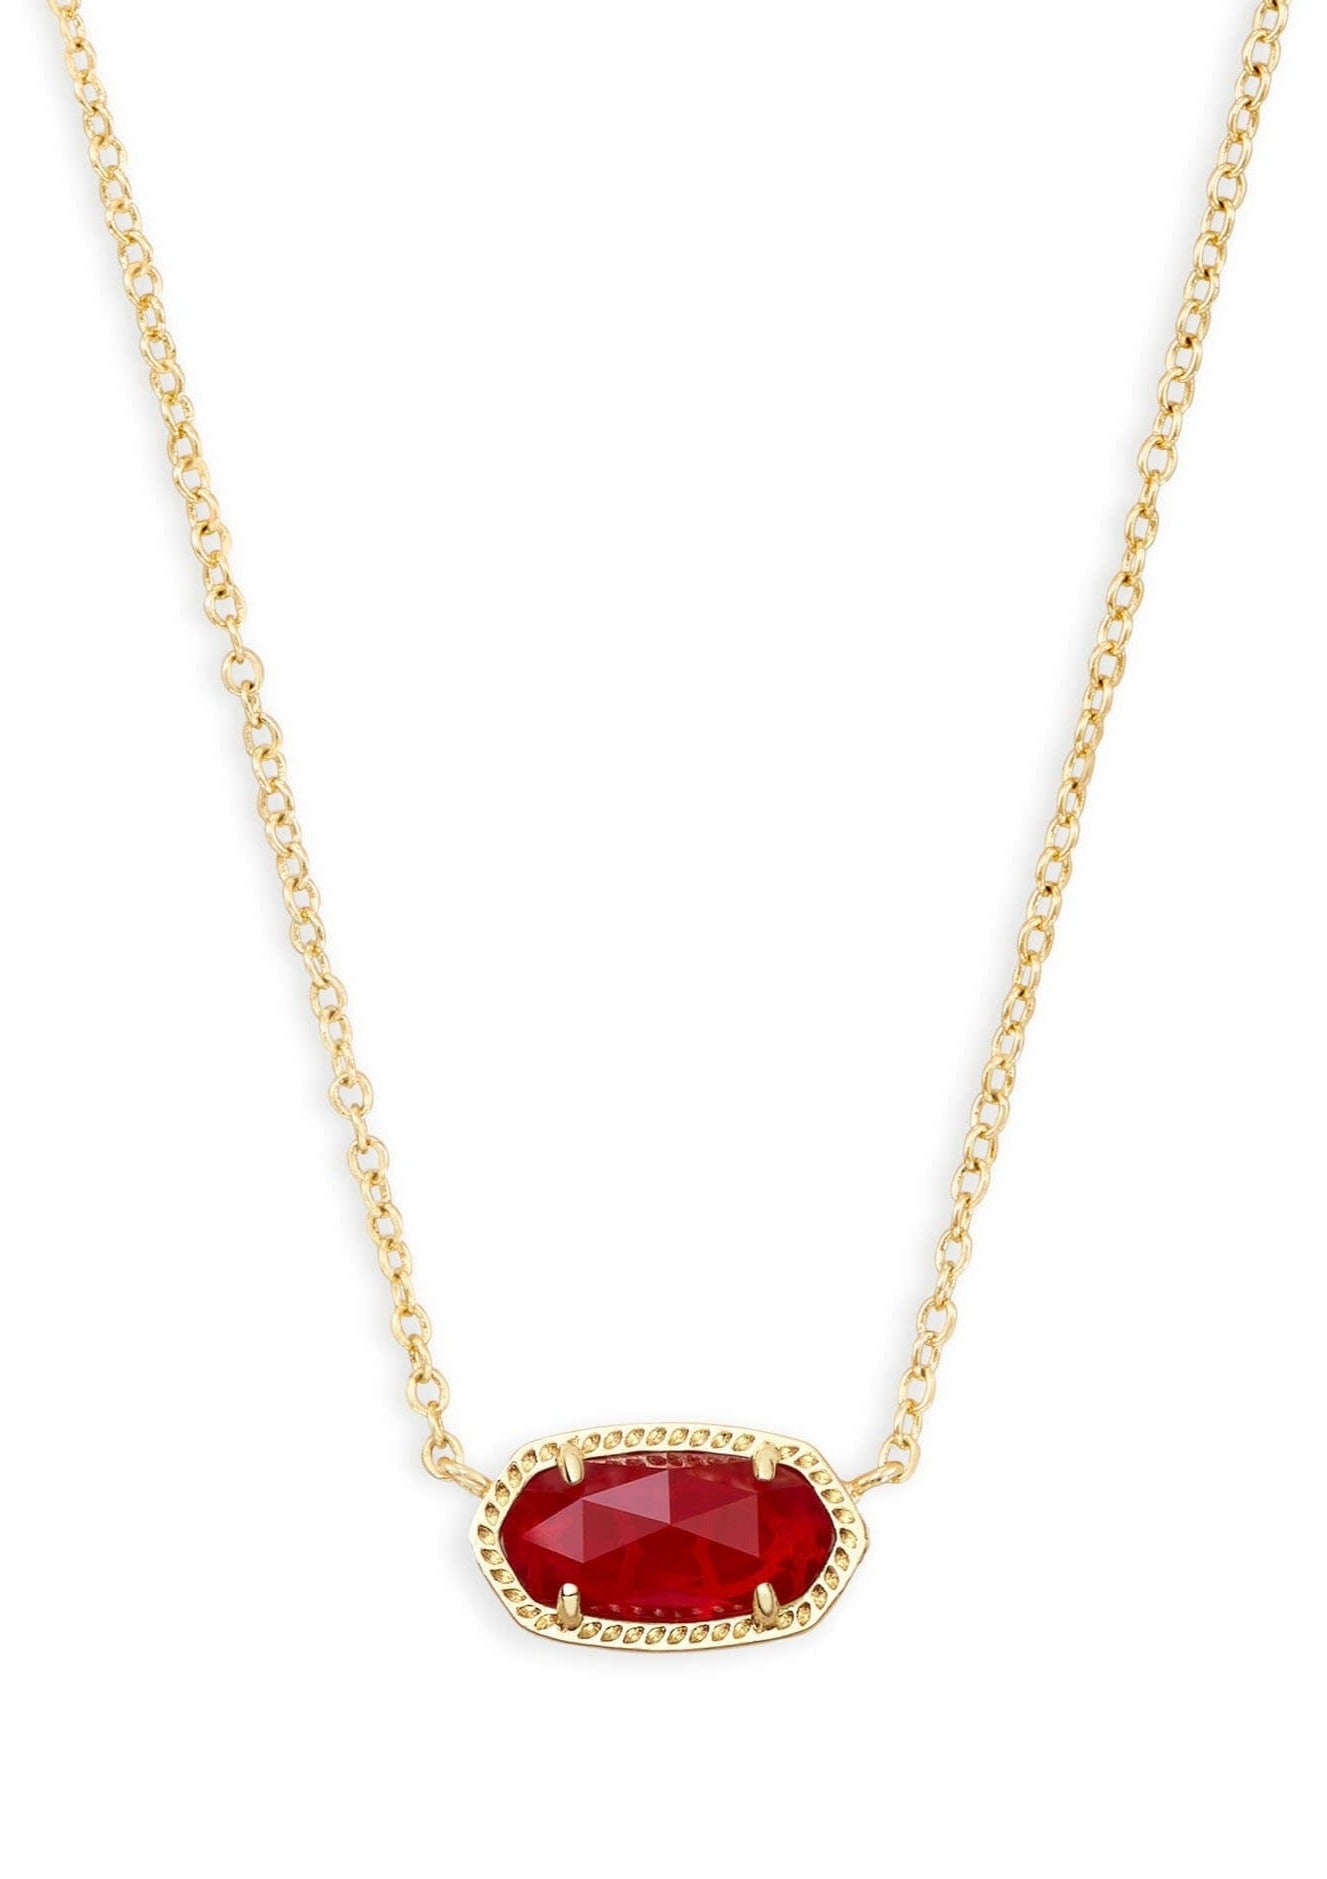 Kendra Scott Elisa Necklace - Gold Ruby